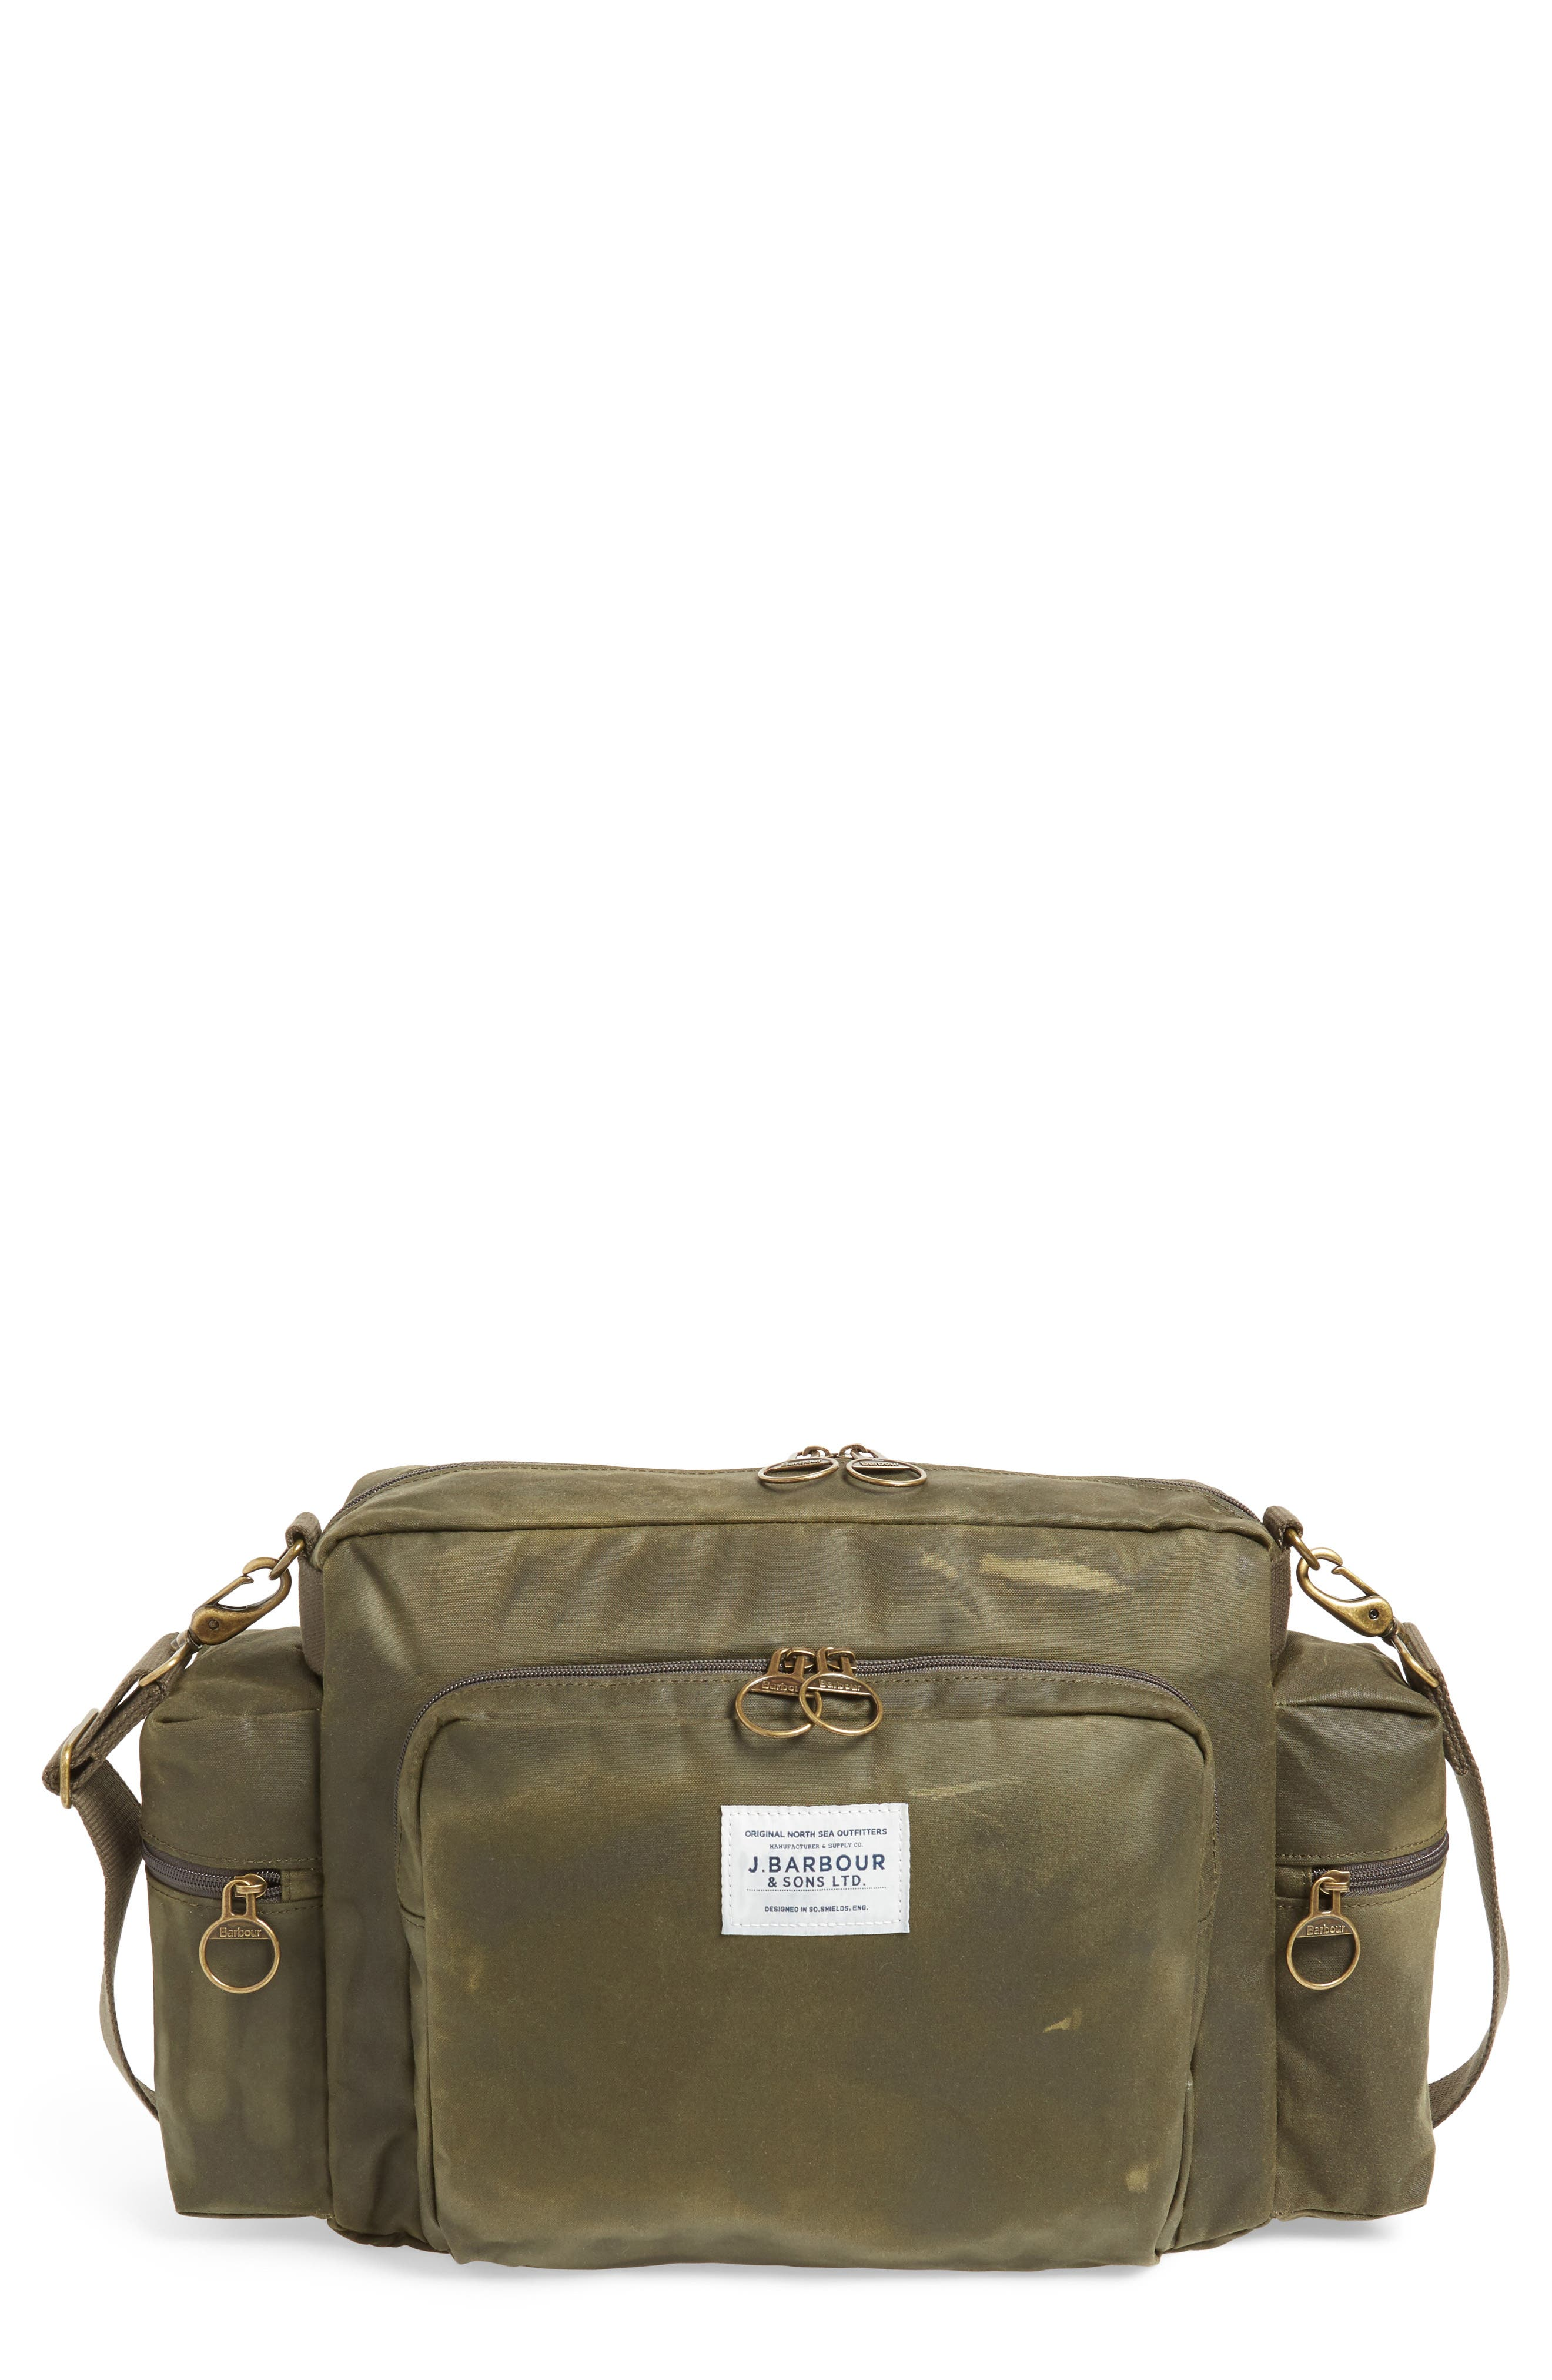 Barbour Archive Business Bag